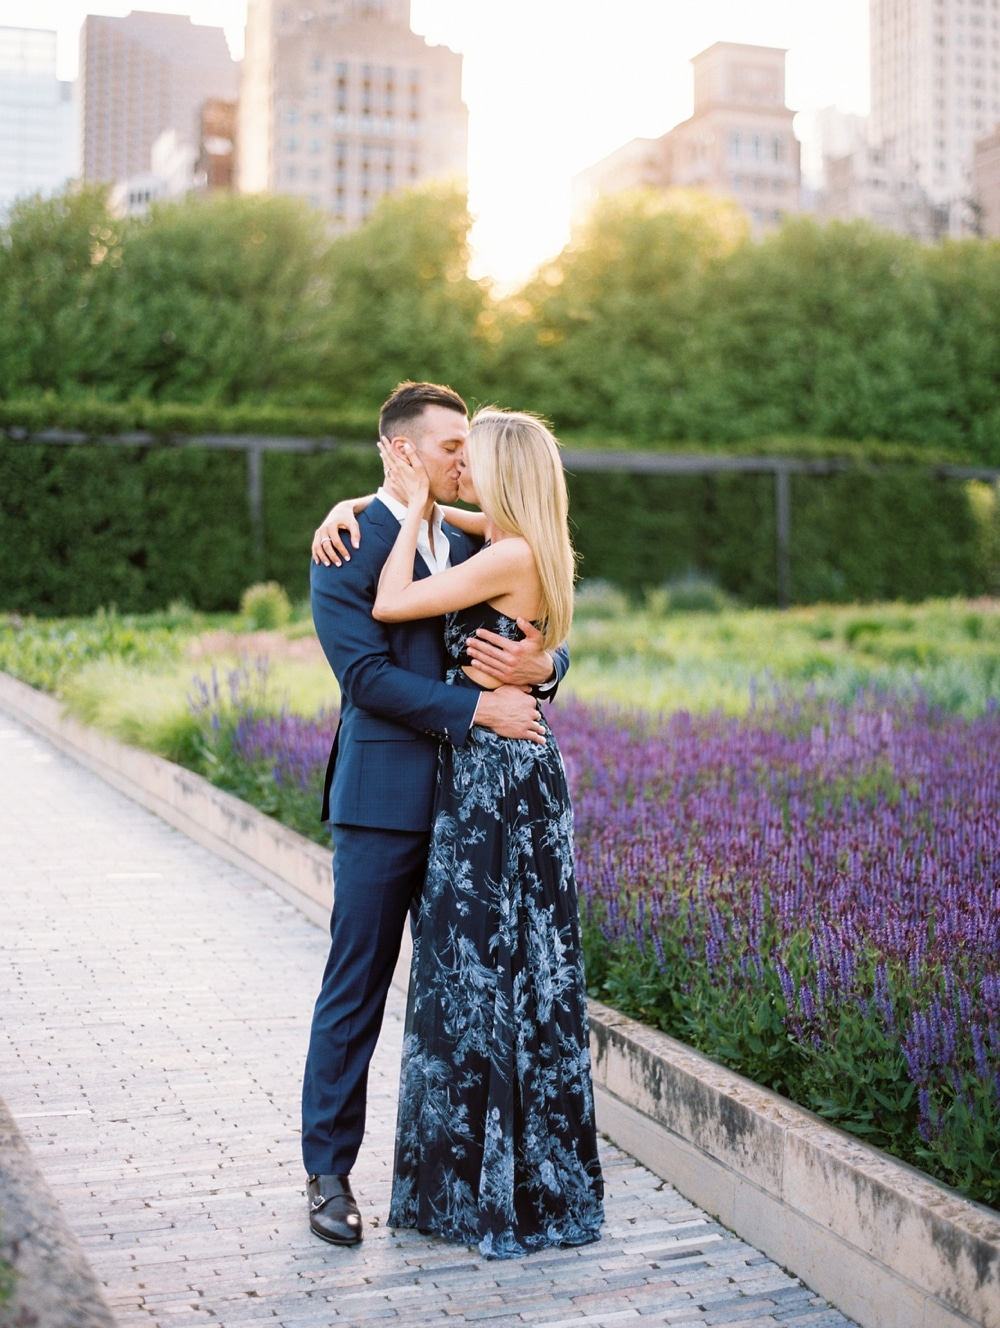 kristin-la-voie-photography-Chicago-Wedding-Photographer-Art-Institute-Lurie-Garden-Millennium-Park-13